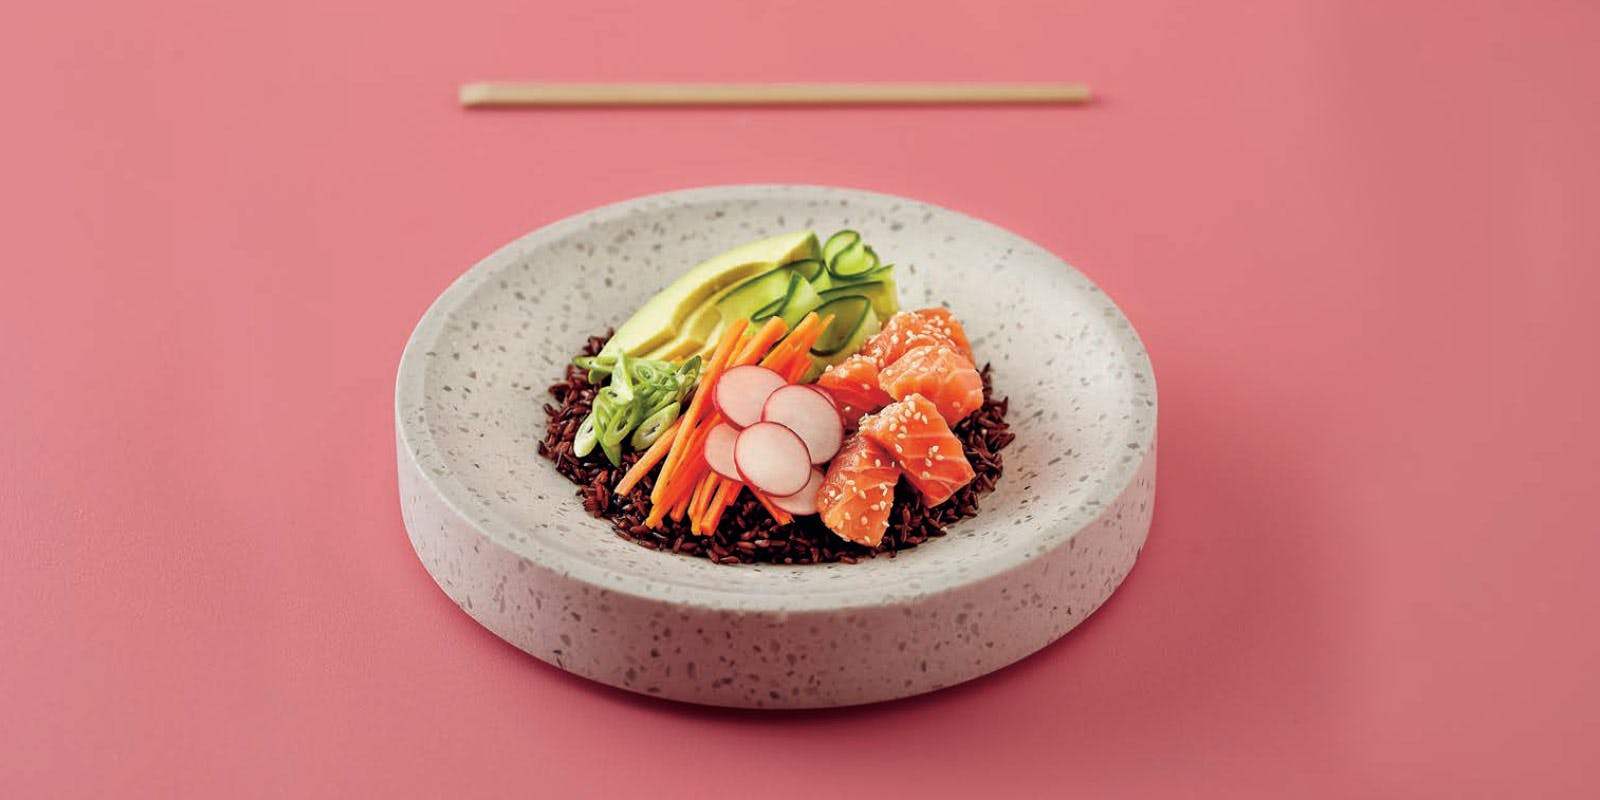 Build your own poke bowl